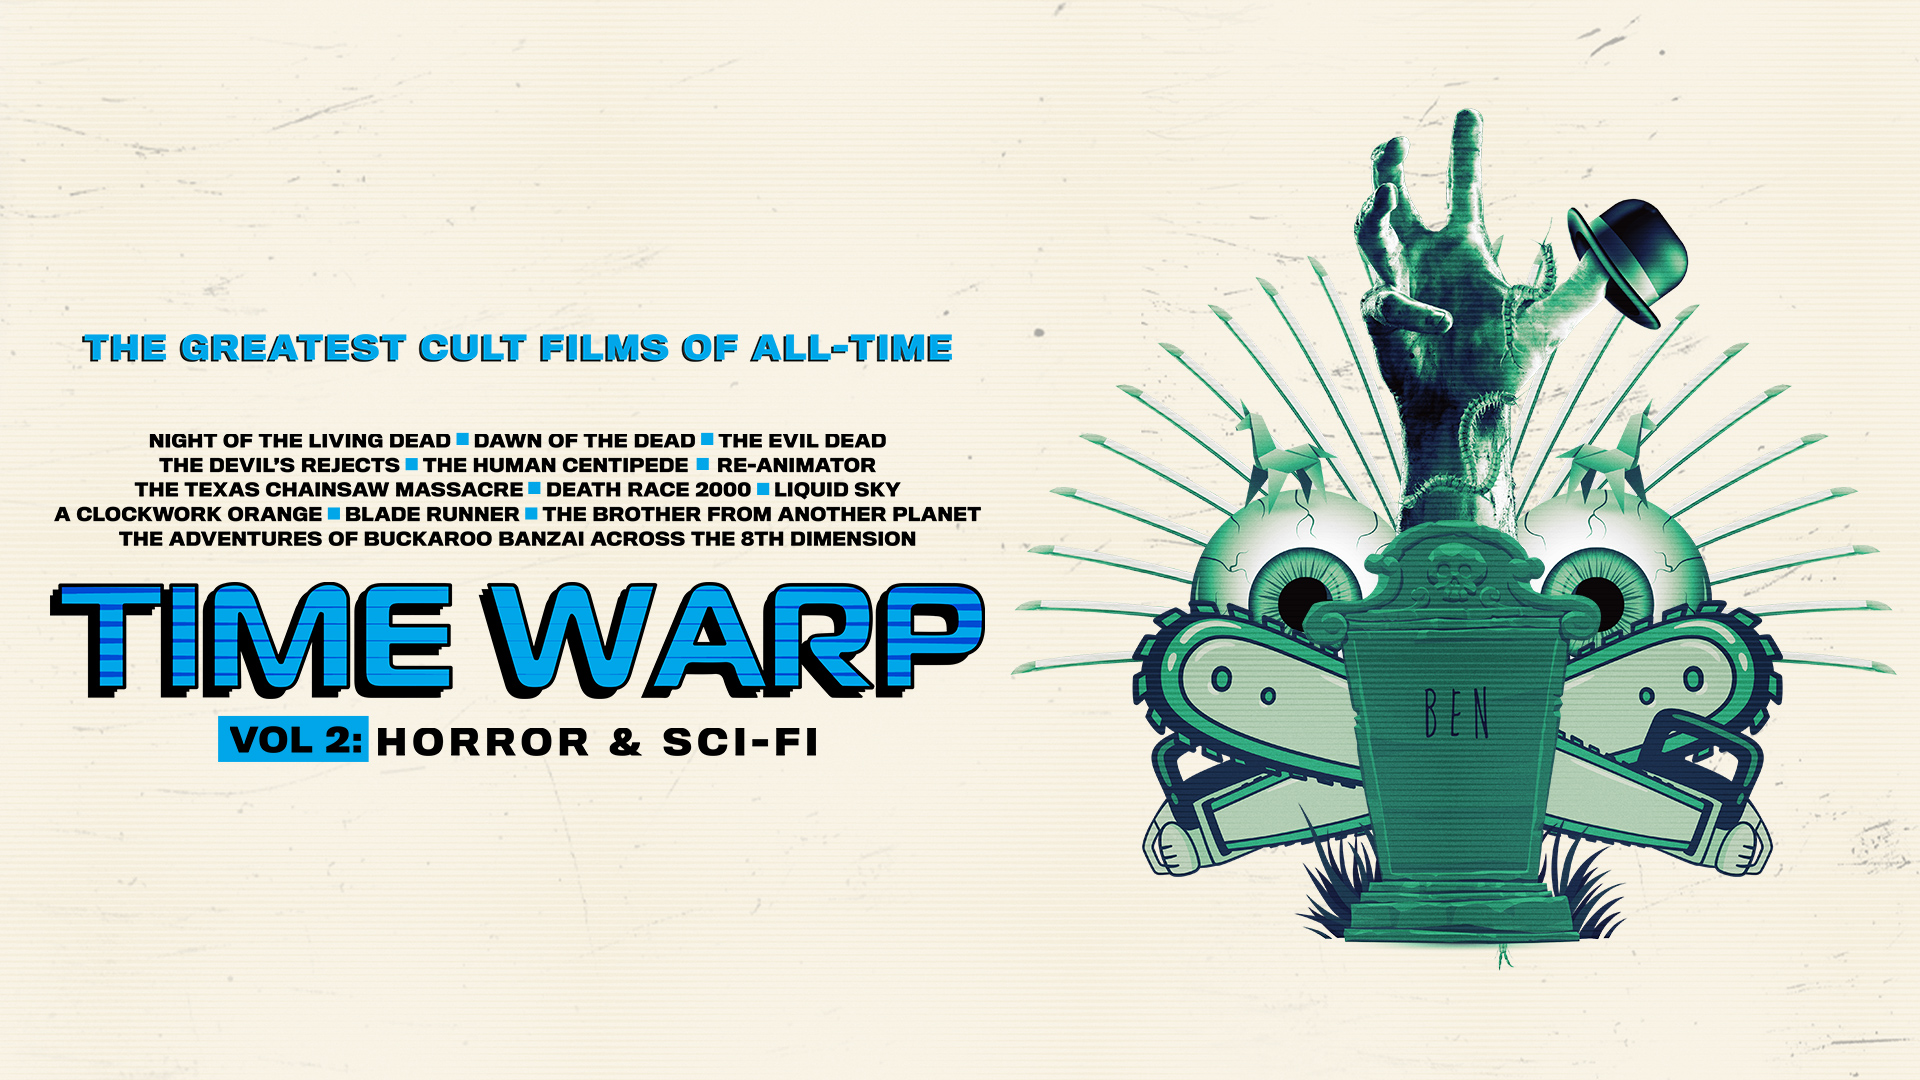 Time Warp: The Greatest Cult Films of All Time Vol 2 - Horror & Sci-Fi